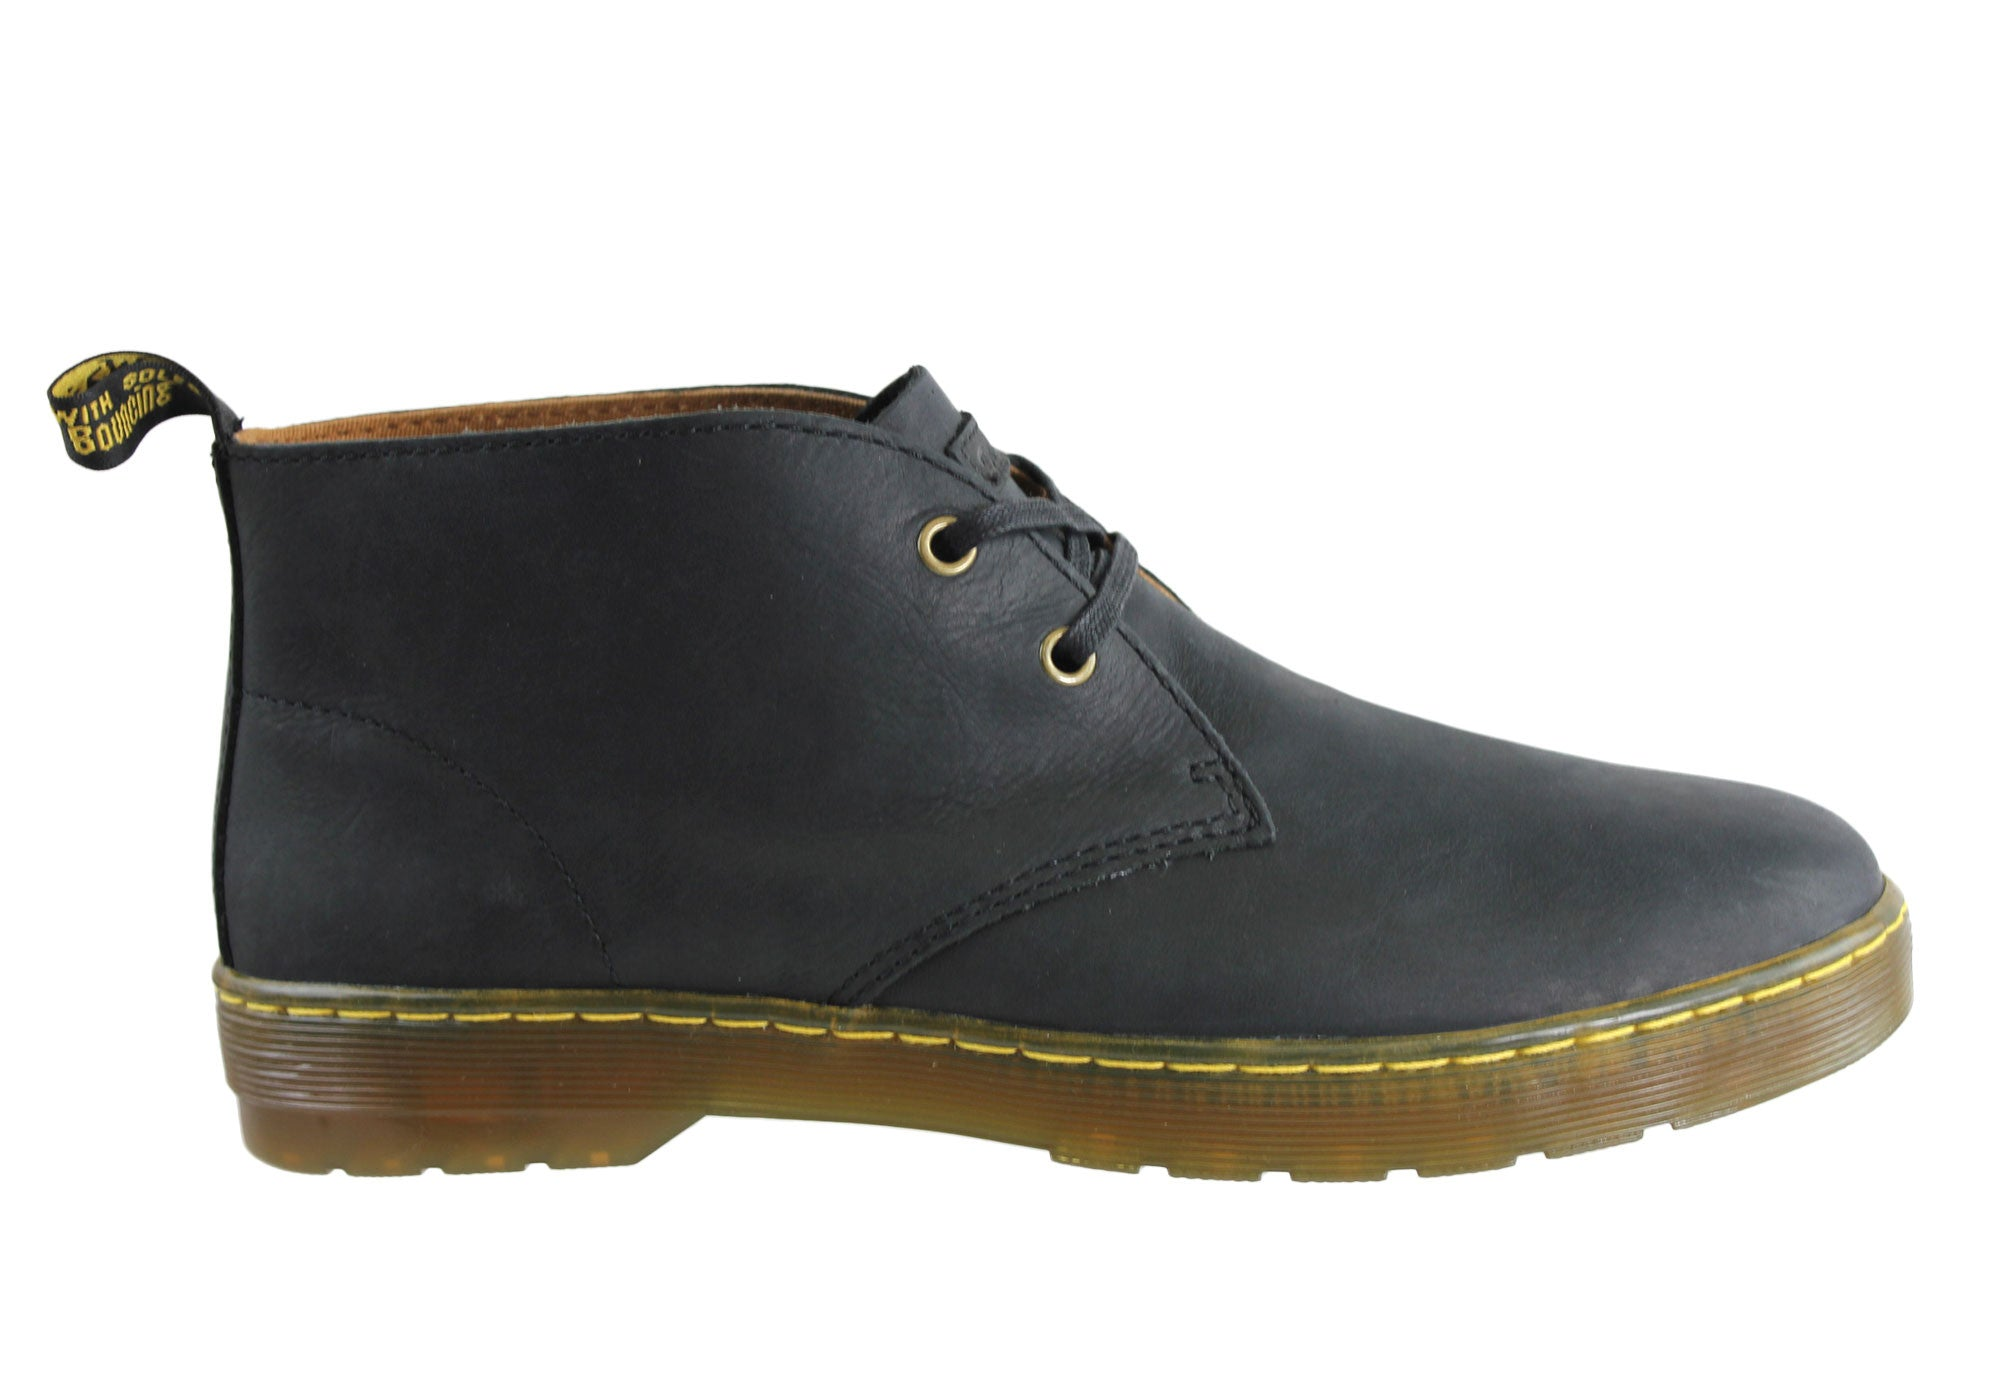 Men Desert Boots Martin Shoes With Durability and Comfort Suede Leather Hiking Oxford Shoes